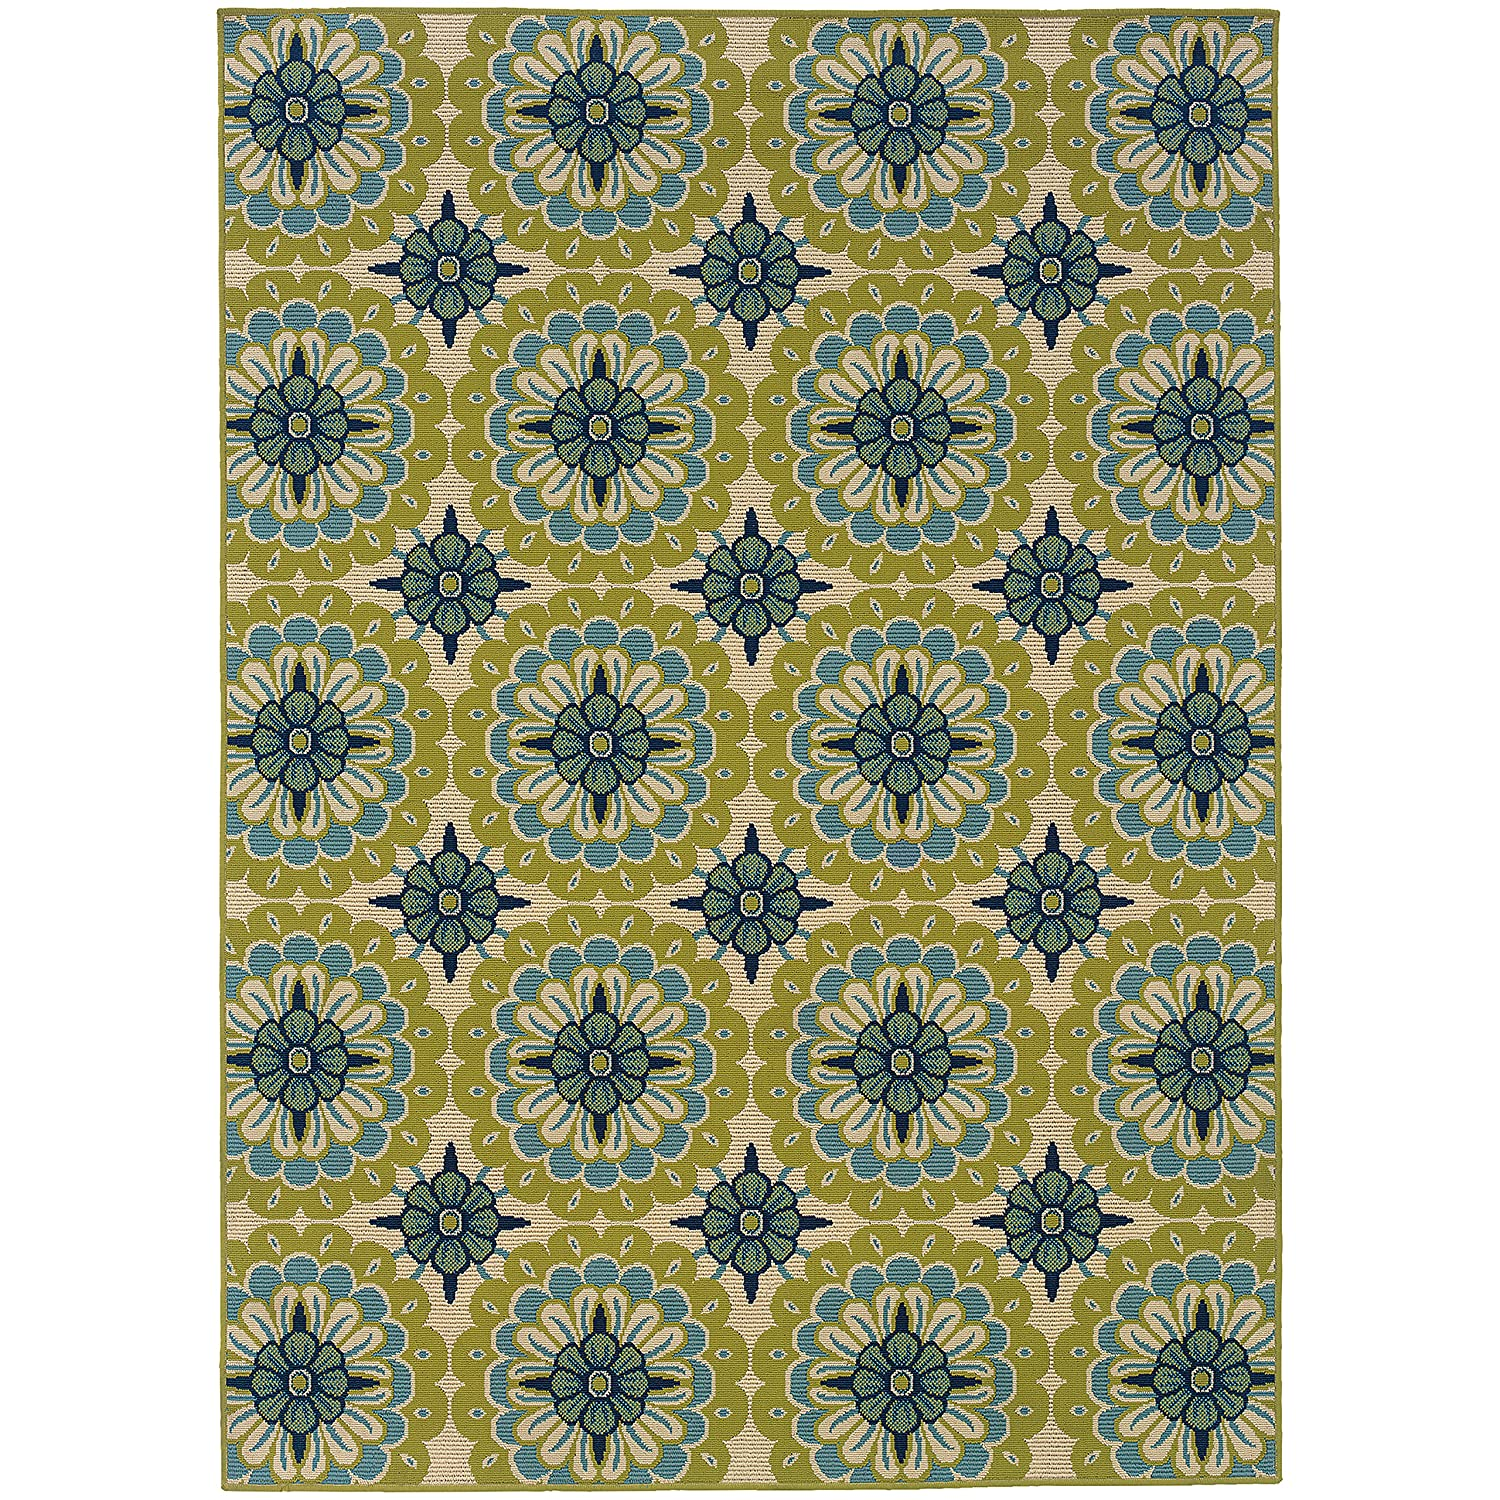 Amazon.com : Oriental Weavers 8328W Caspian Outdoor/Indoor Area Rug ...